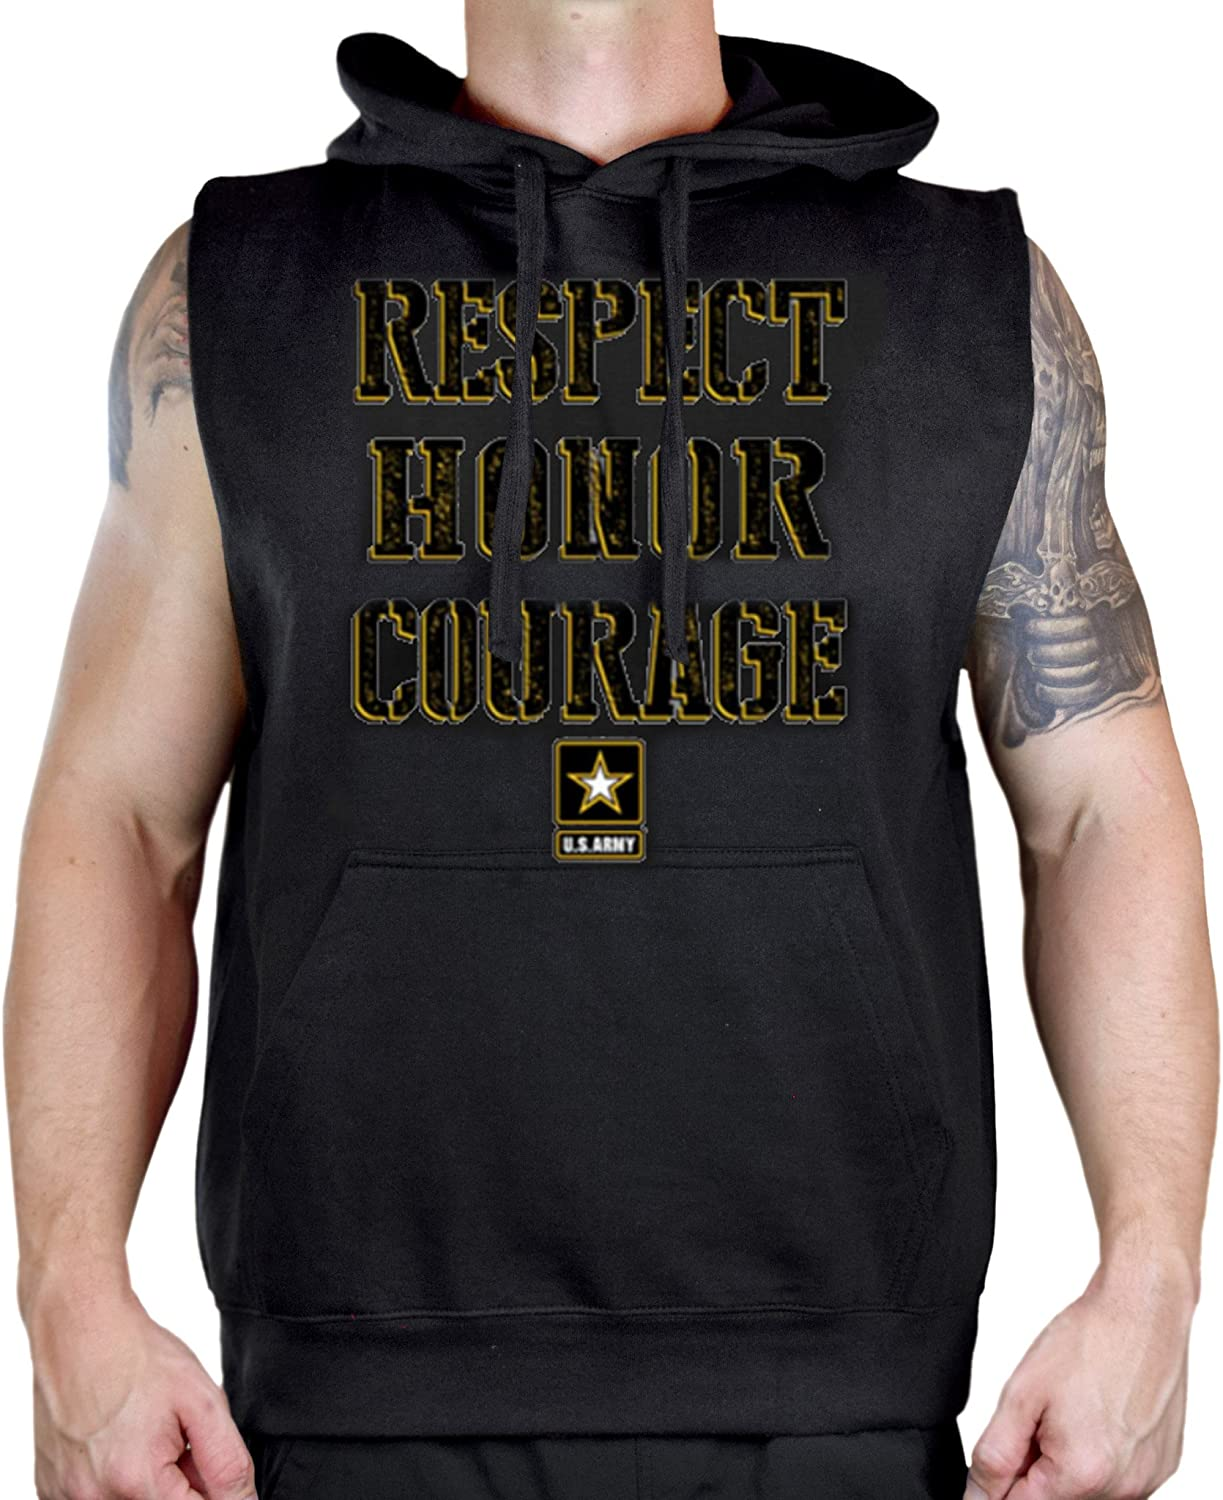 Mens US Army Respect Honor Courage Sleeveless Vest Hoodie